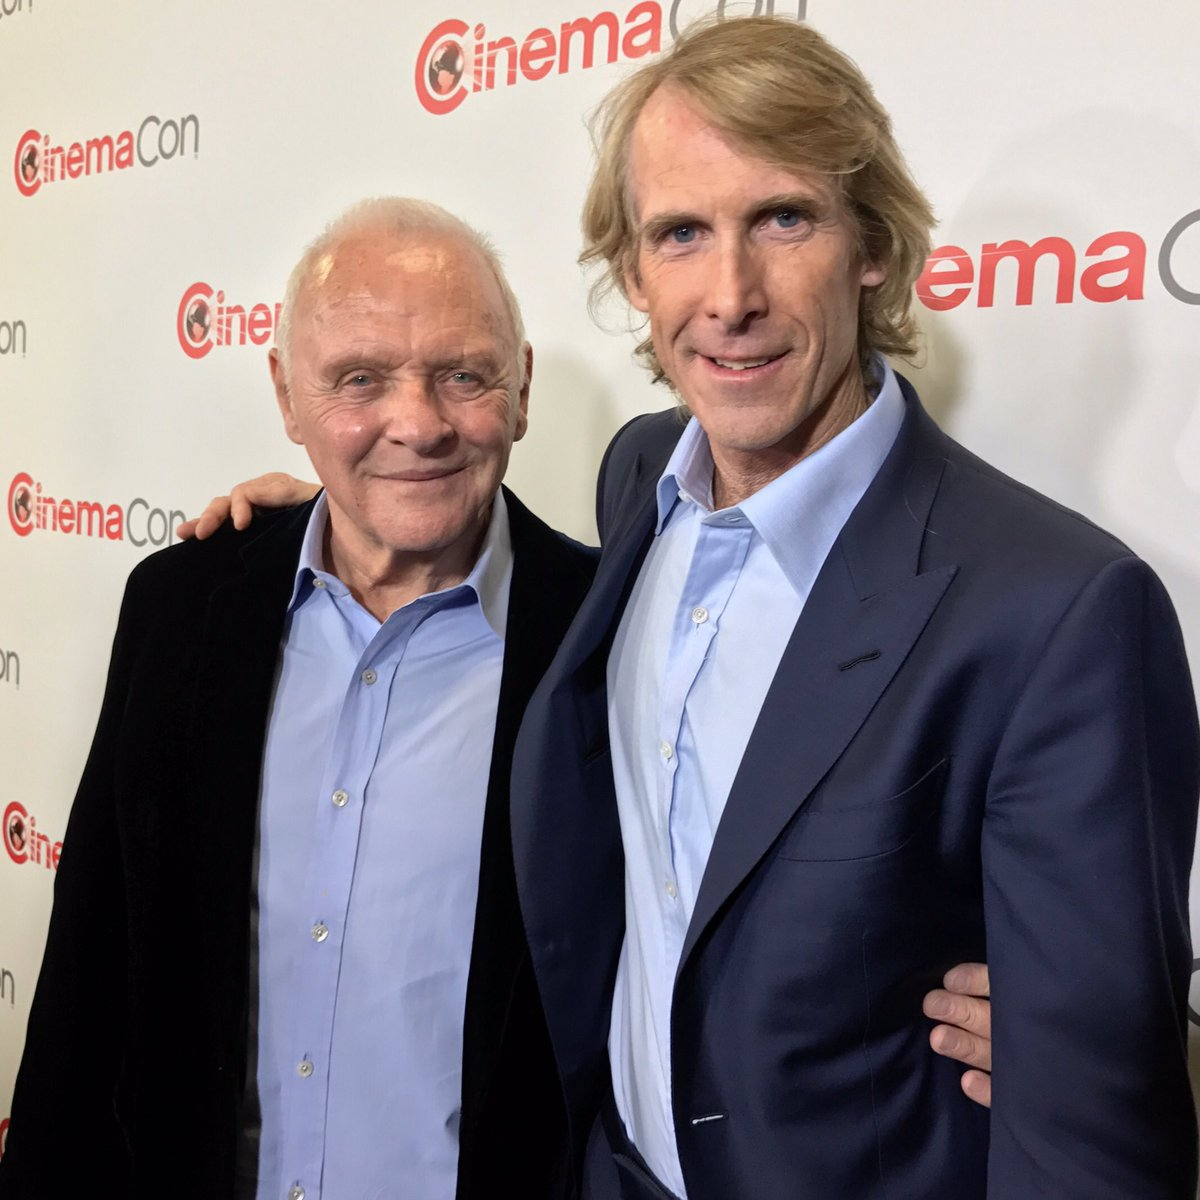 Having a great time at #cinemacon with @michaelbay for @transformers in #lasvegas